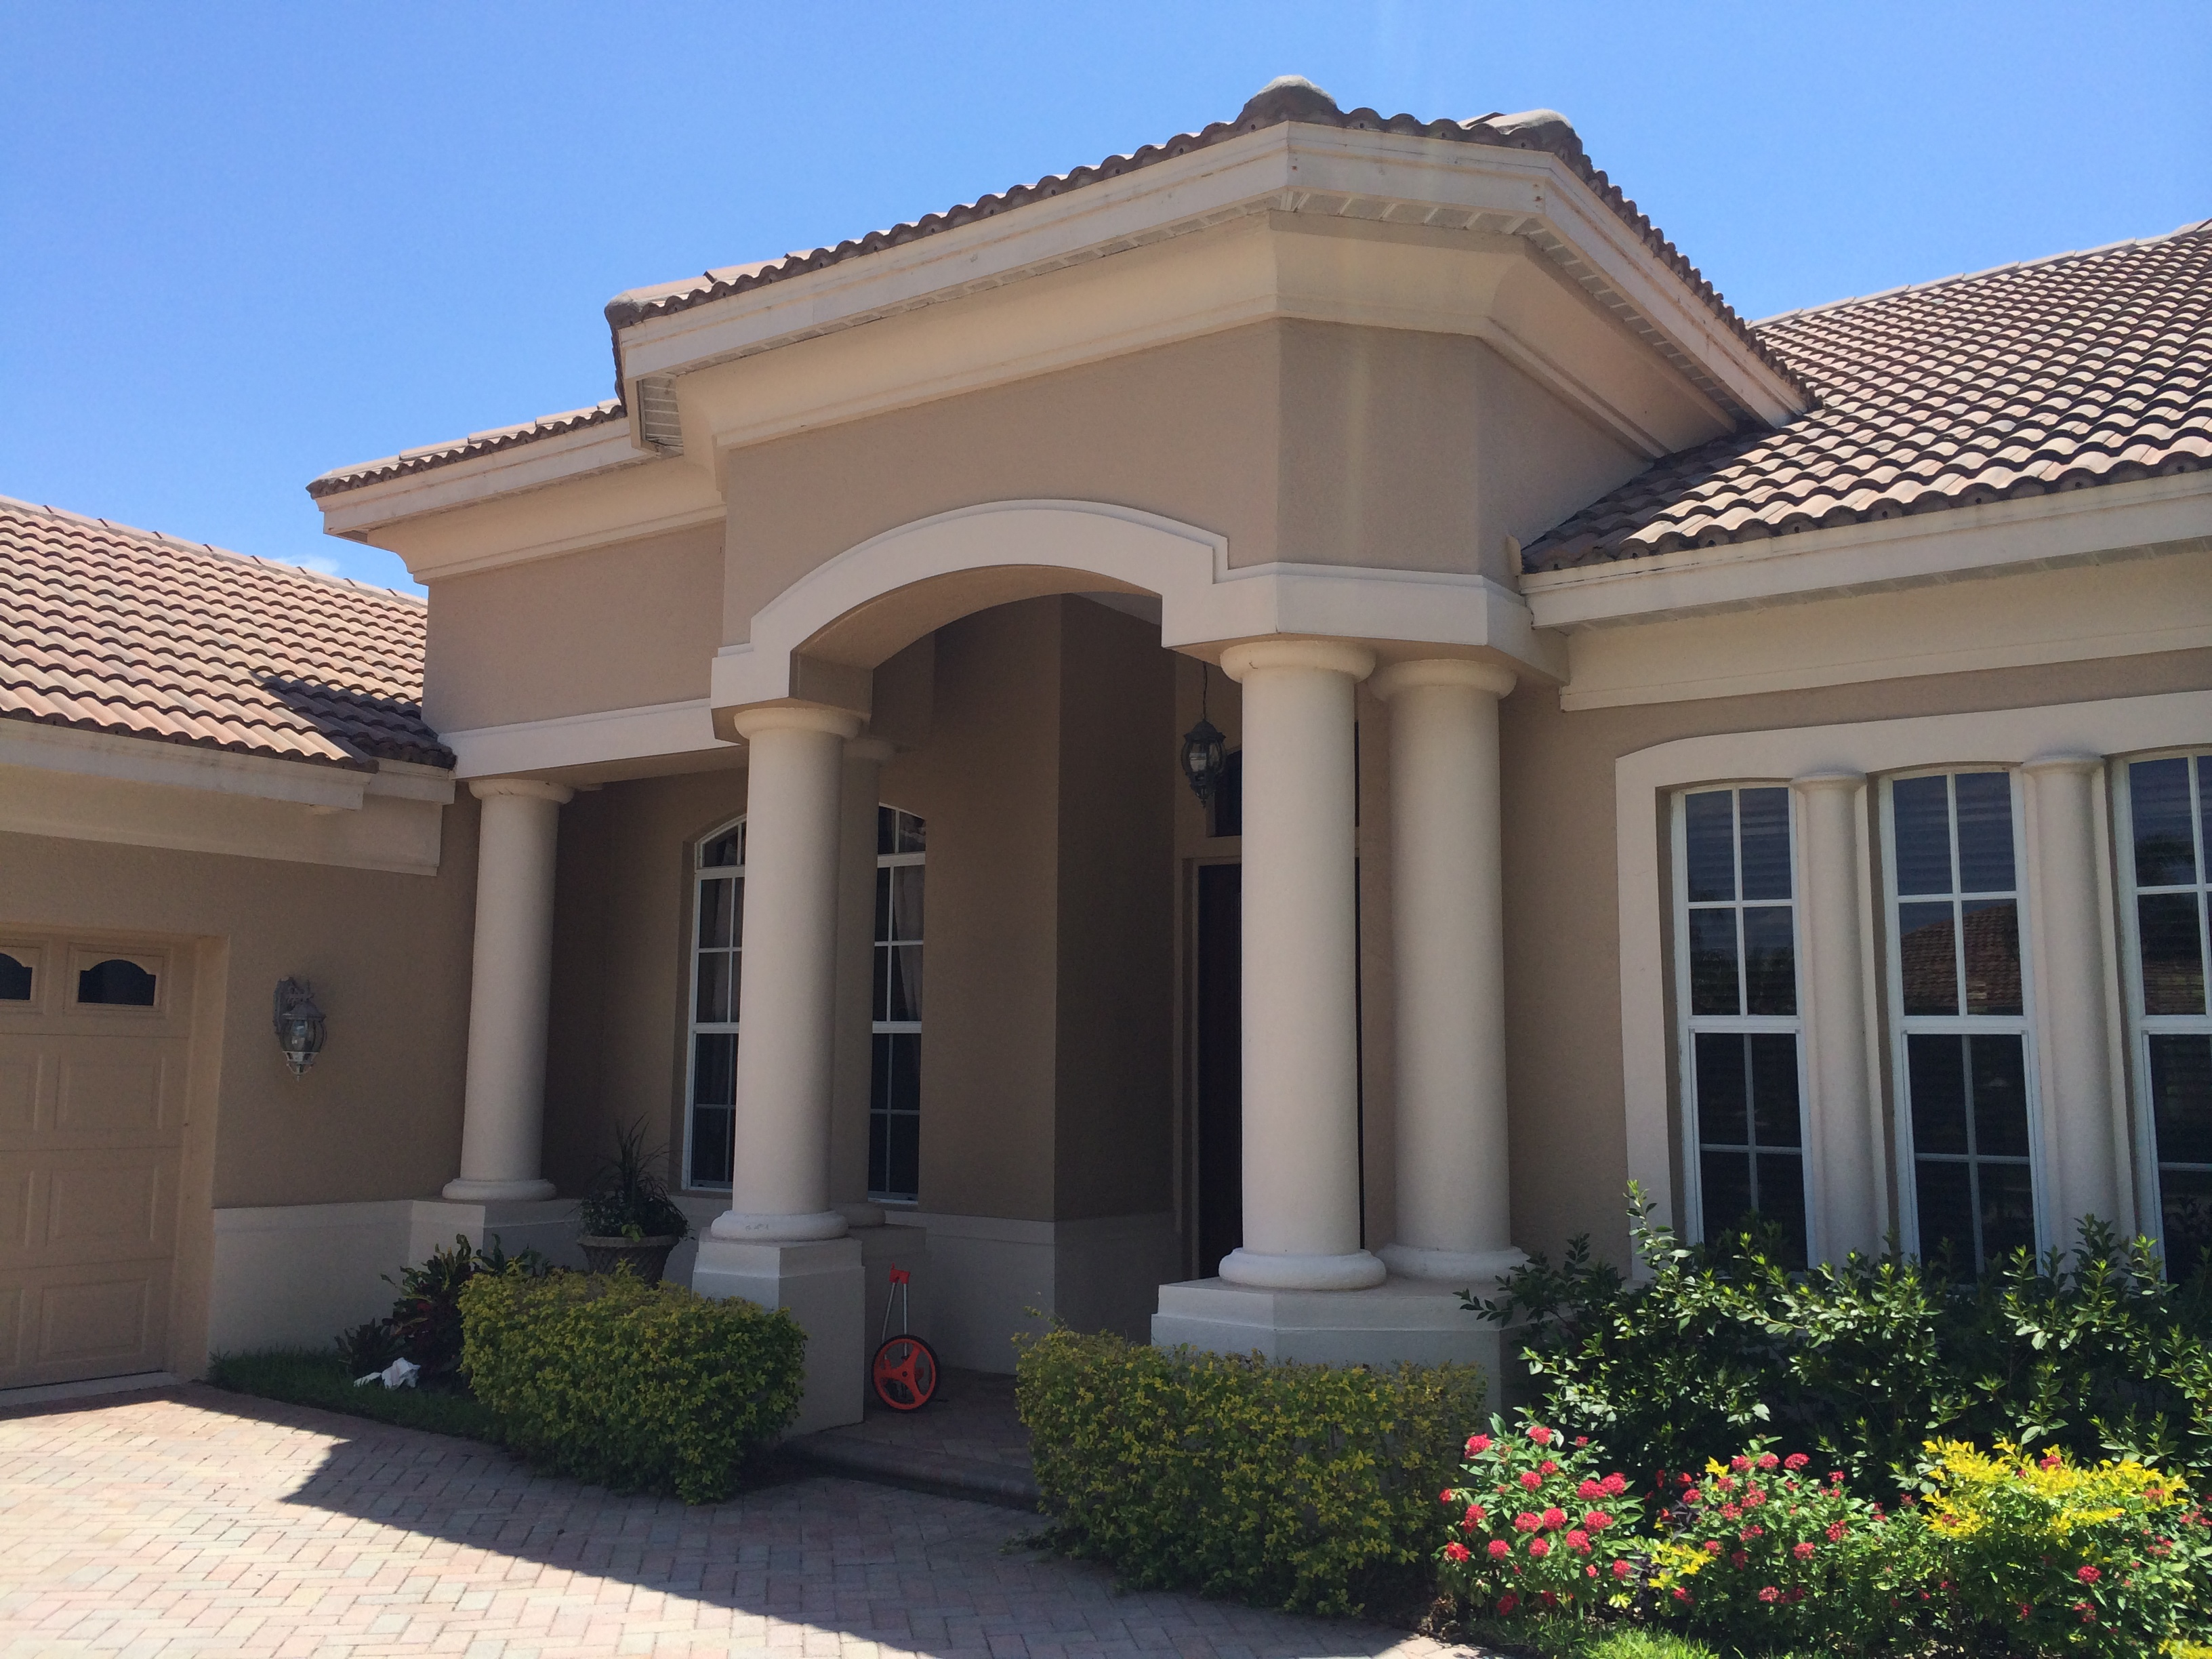 Exterior Painting Cost   Burnett 1 800 PAINTING 2 000 to 3 000 square feet